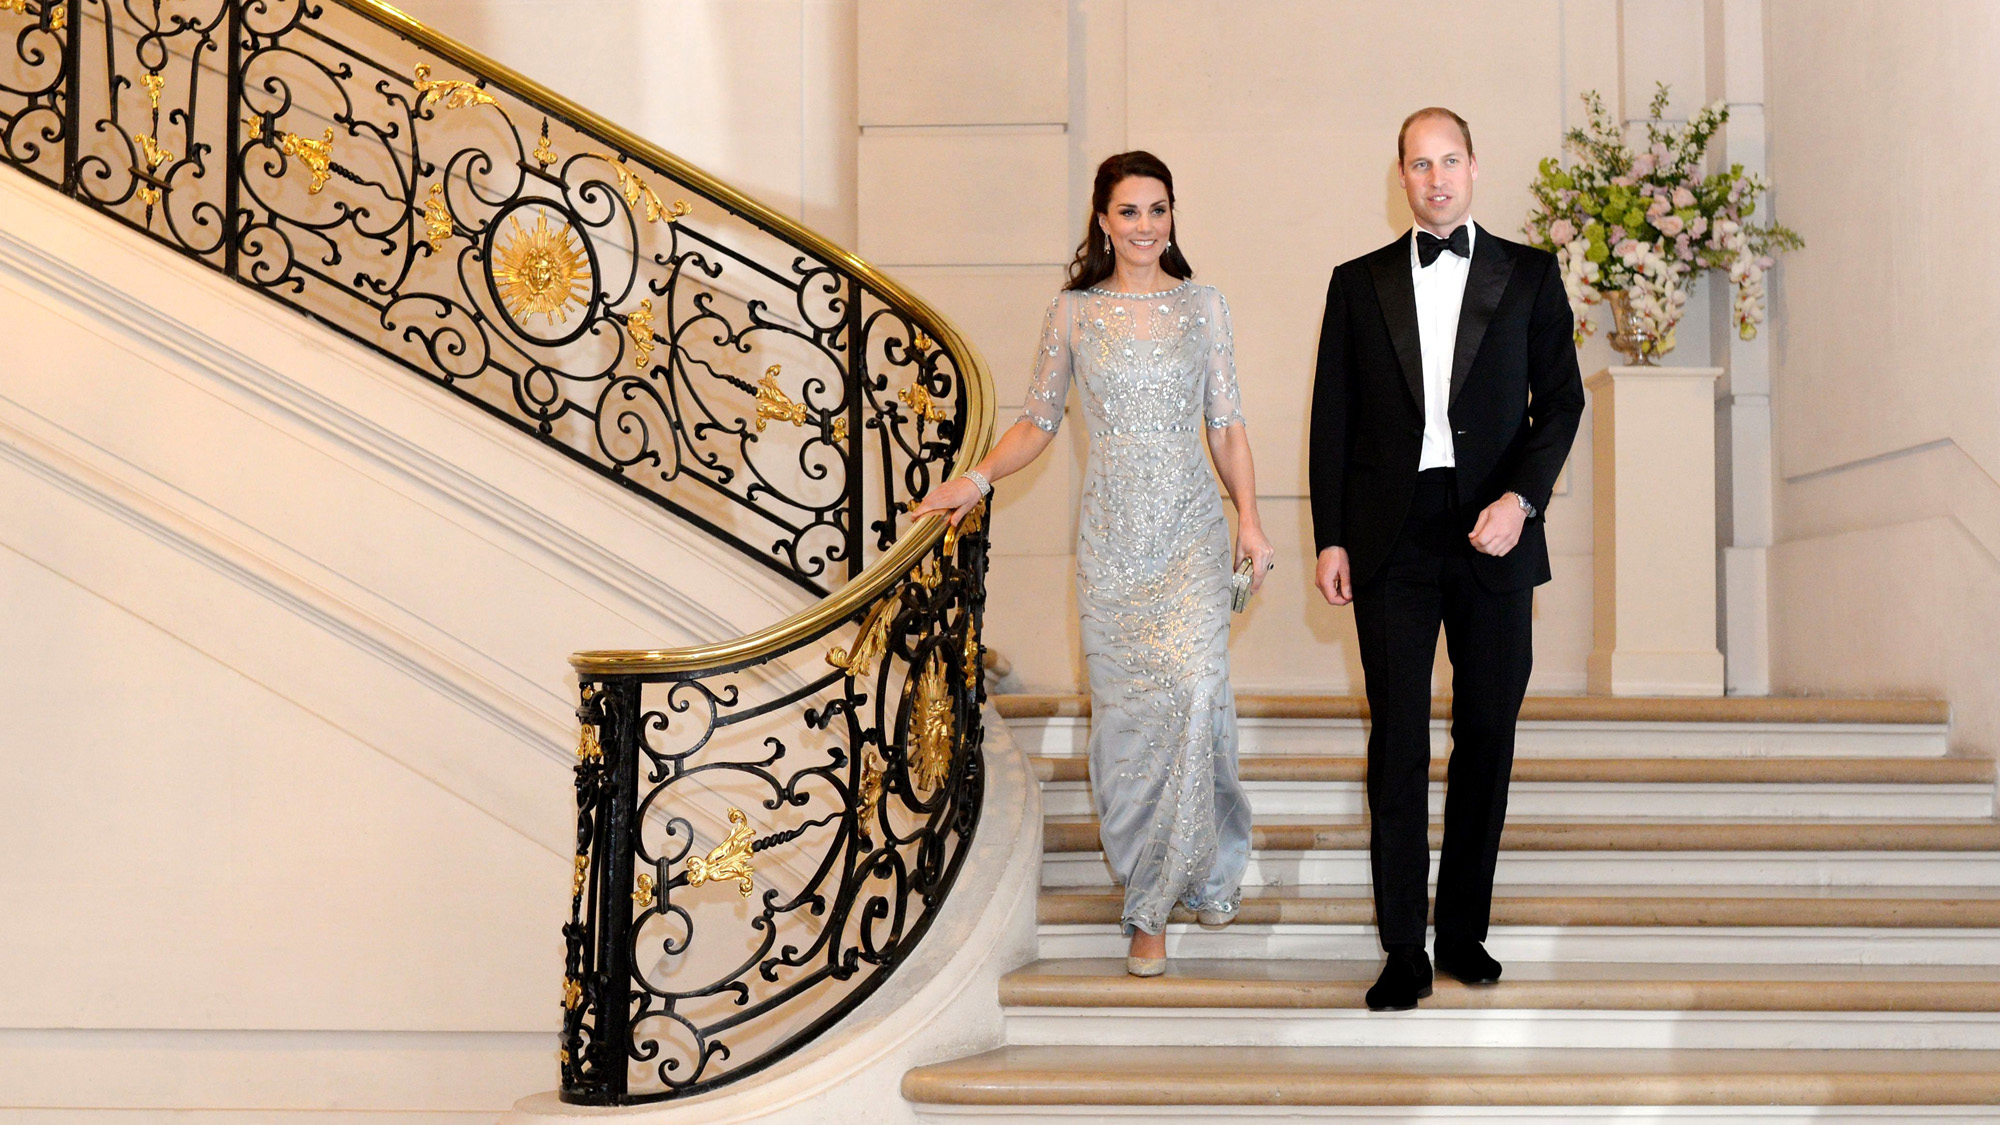 Kate Middleton Wears Chanel For The First Time And Styles